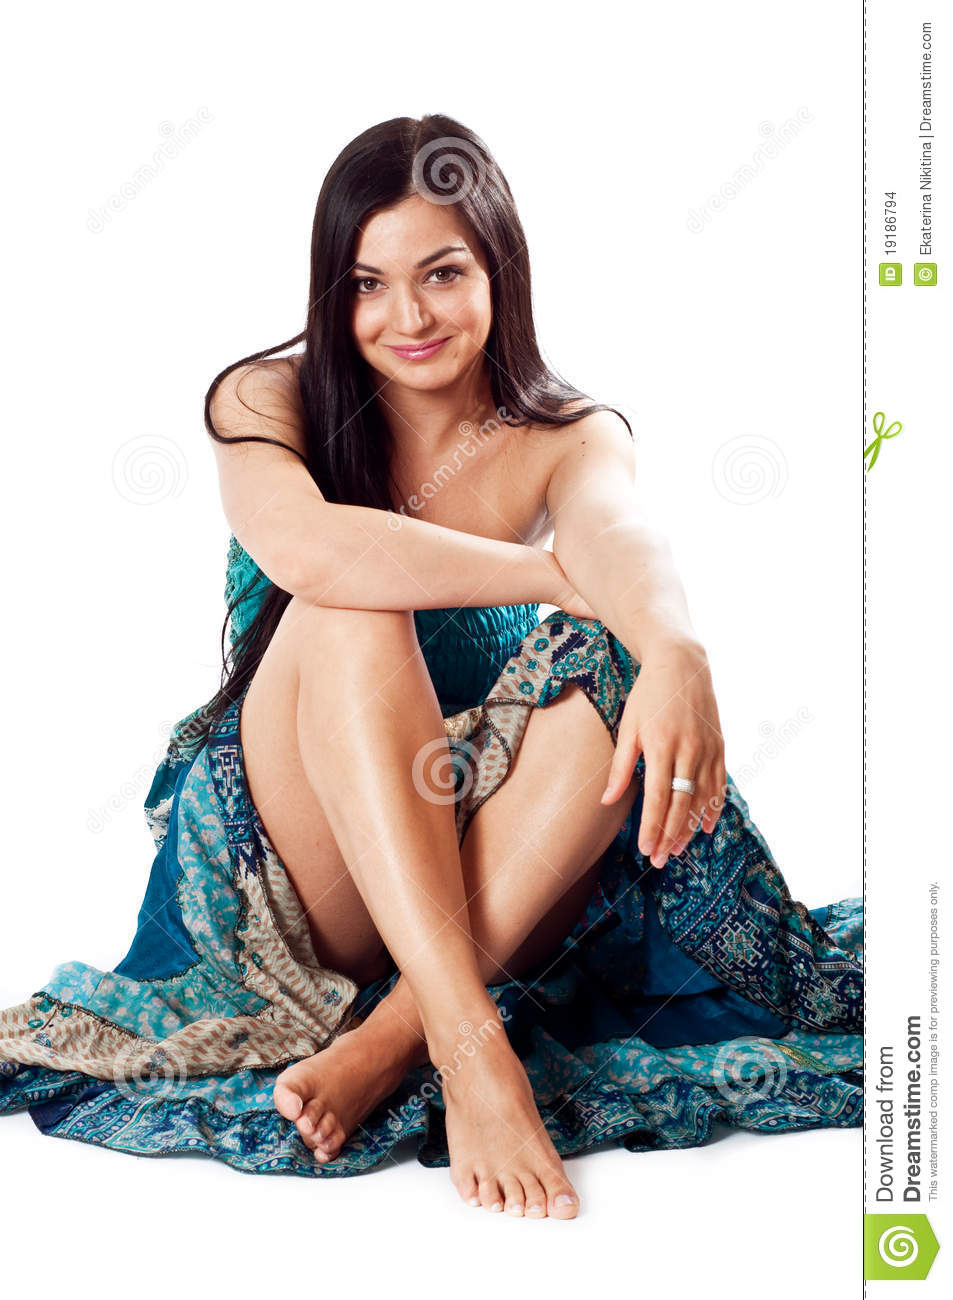 Girl In Blue Dress Sitting Down Stock Photo Image 19186794